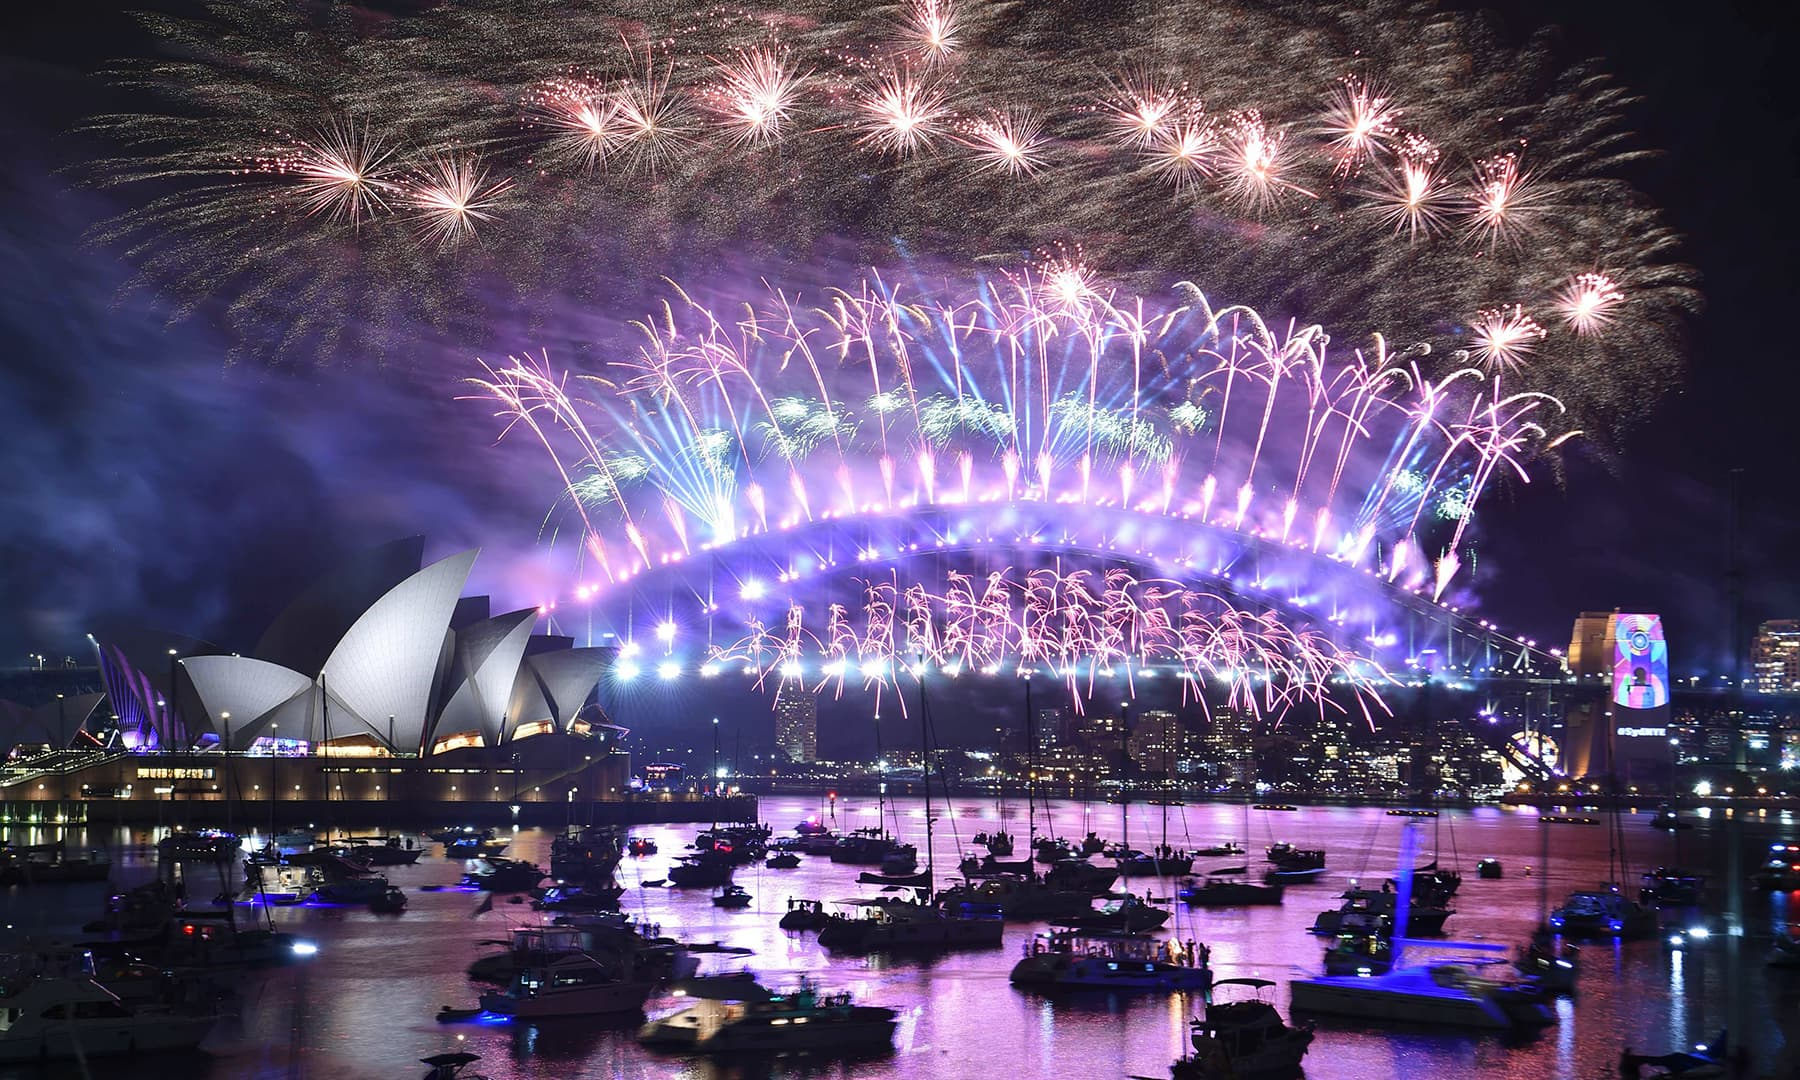 New Year's Eve fireworks erupt over Sydney's iconic Harbour Bridge and Opera House during the fireworks show on January 1. — AFP